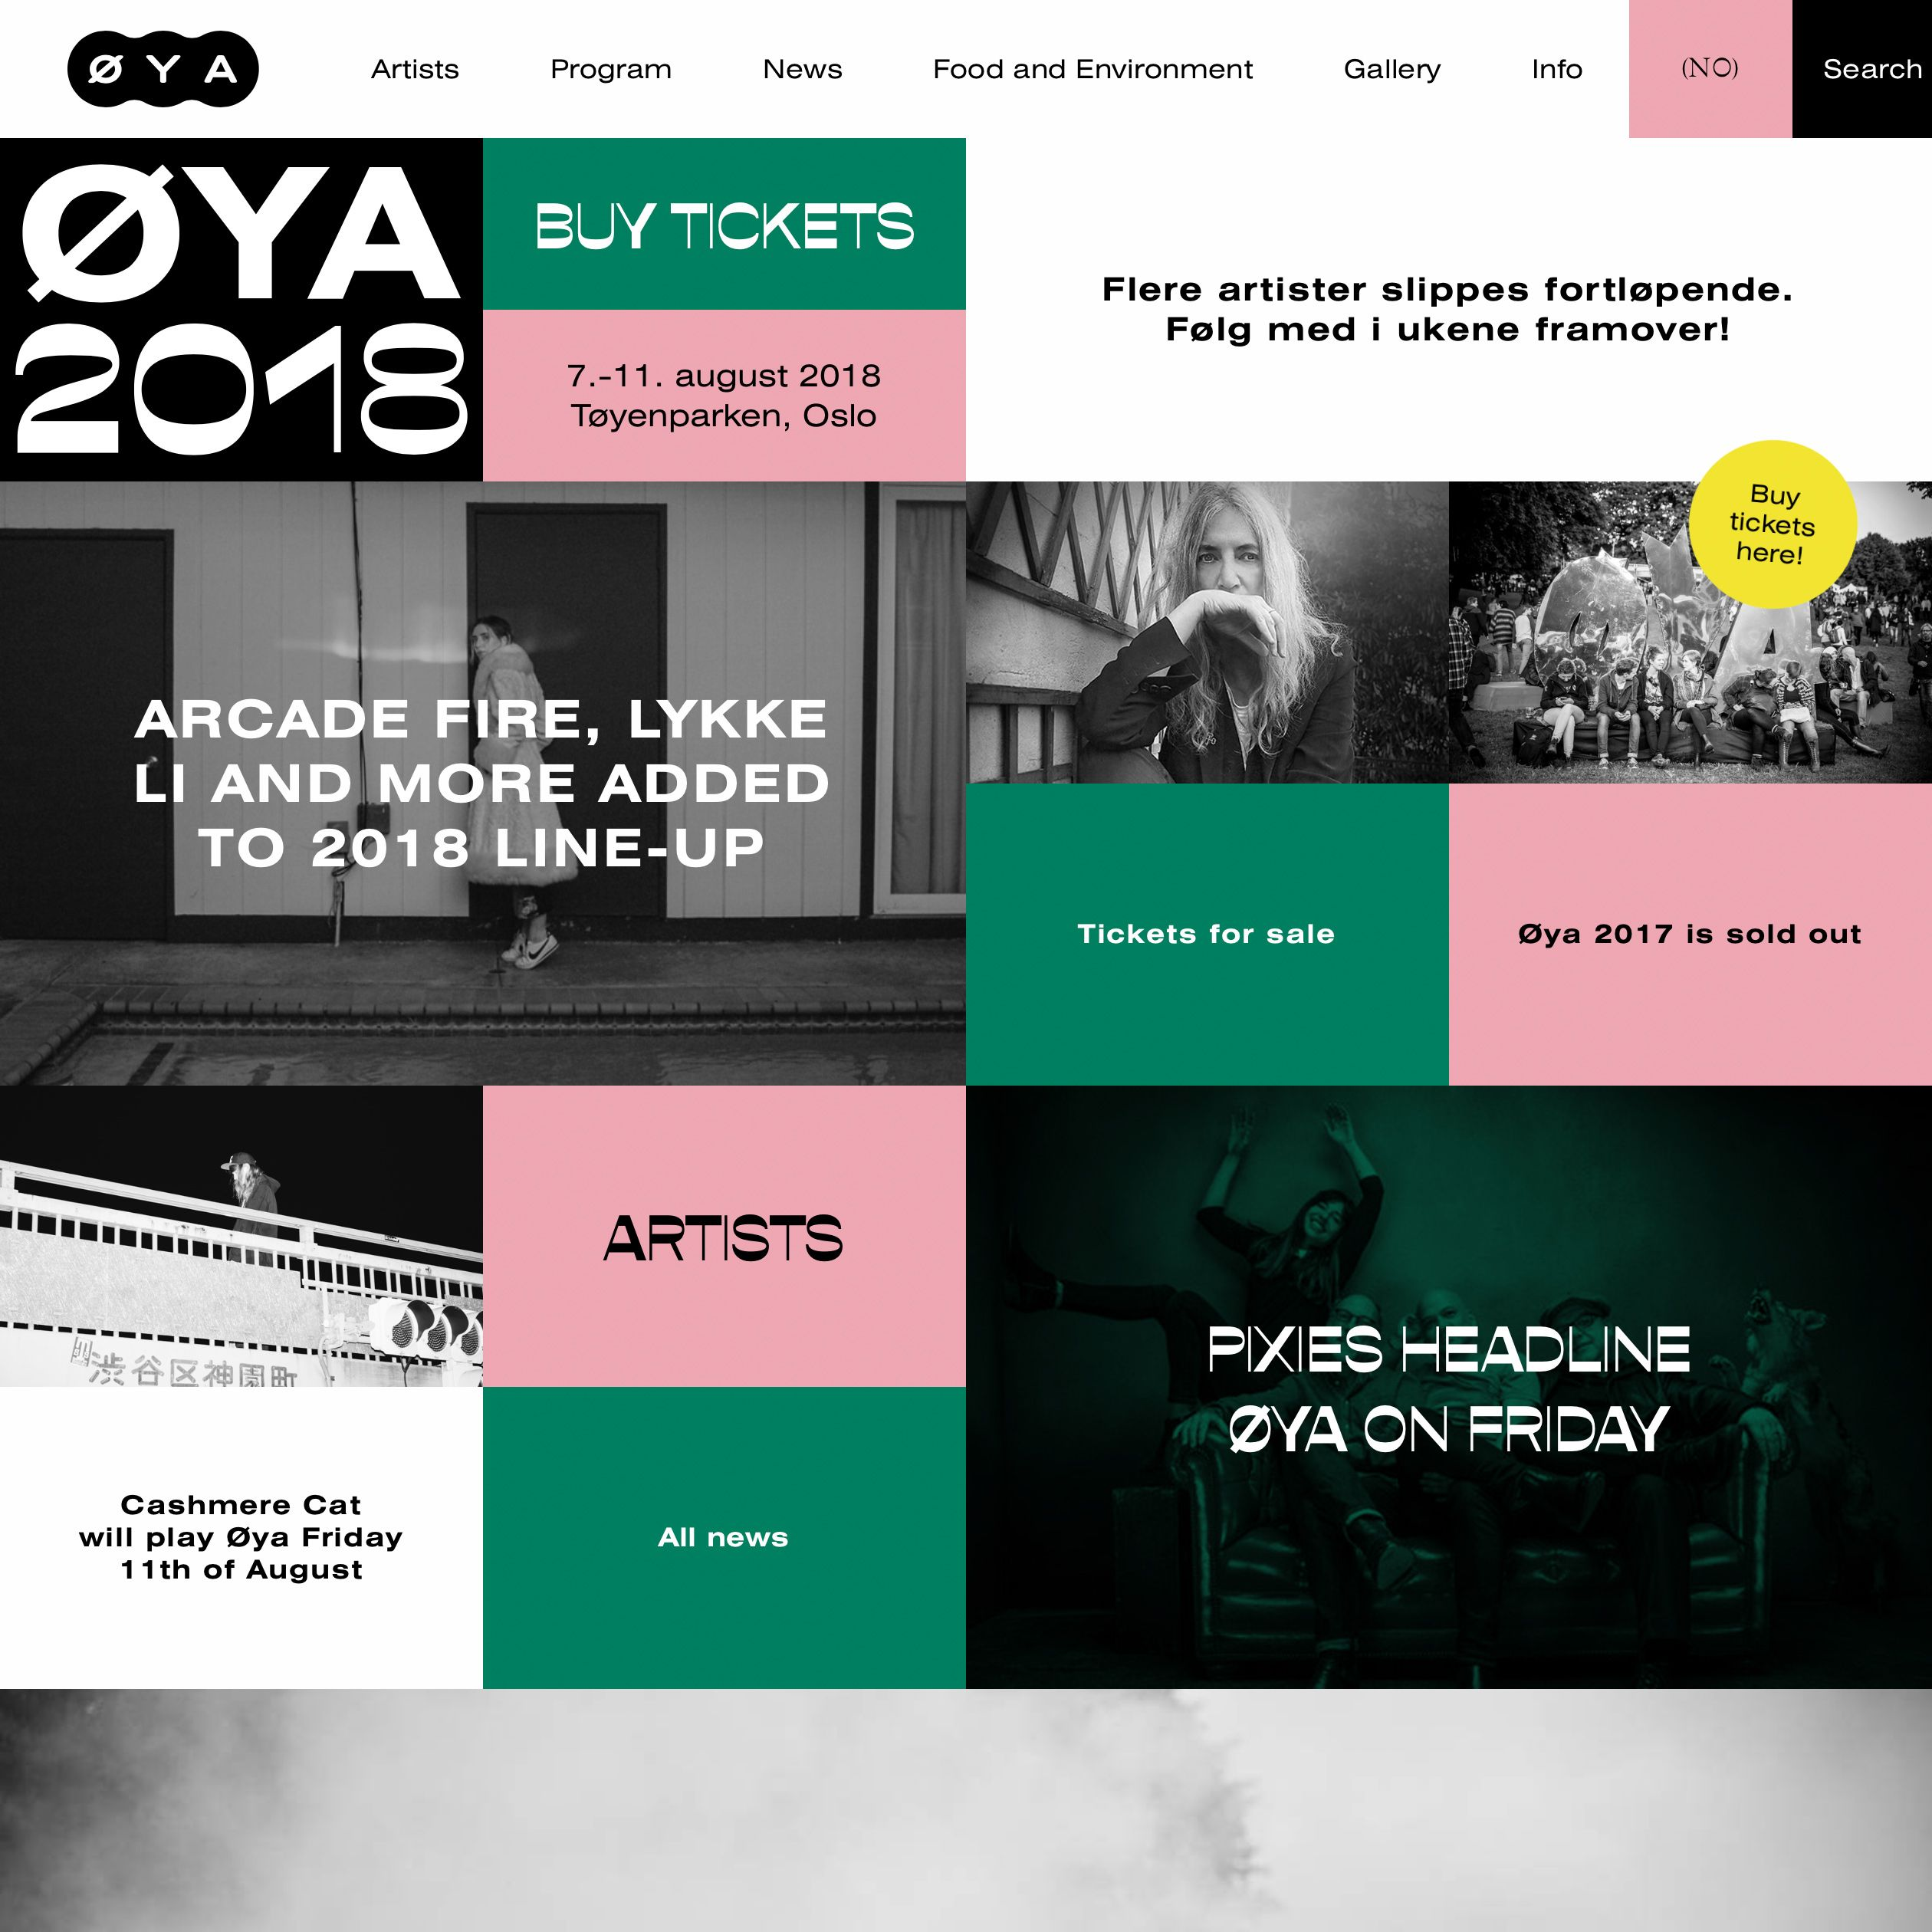 Fonts Used Opposit Swiss 721 And Traulha Typewolf Typography Inspiration Web App Design Web Design Web Design Inspiration